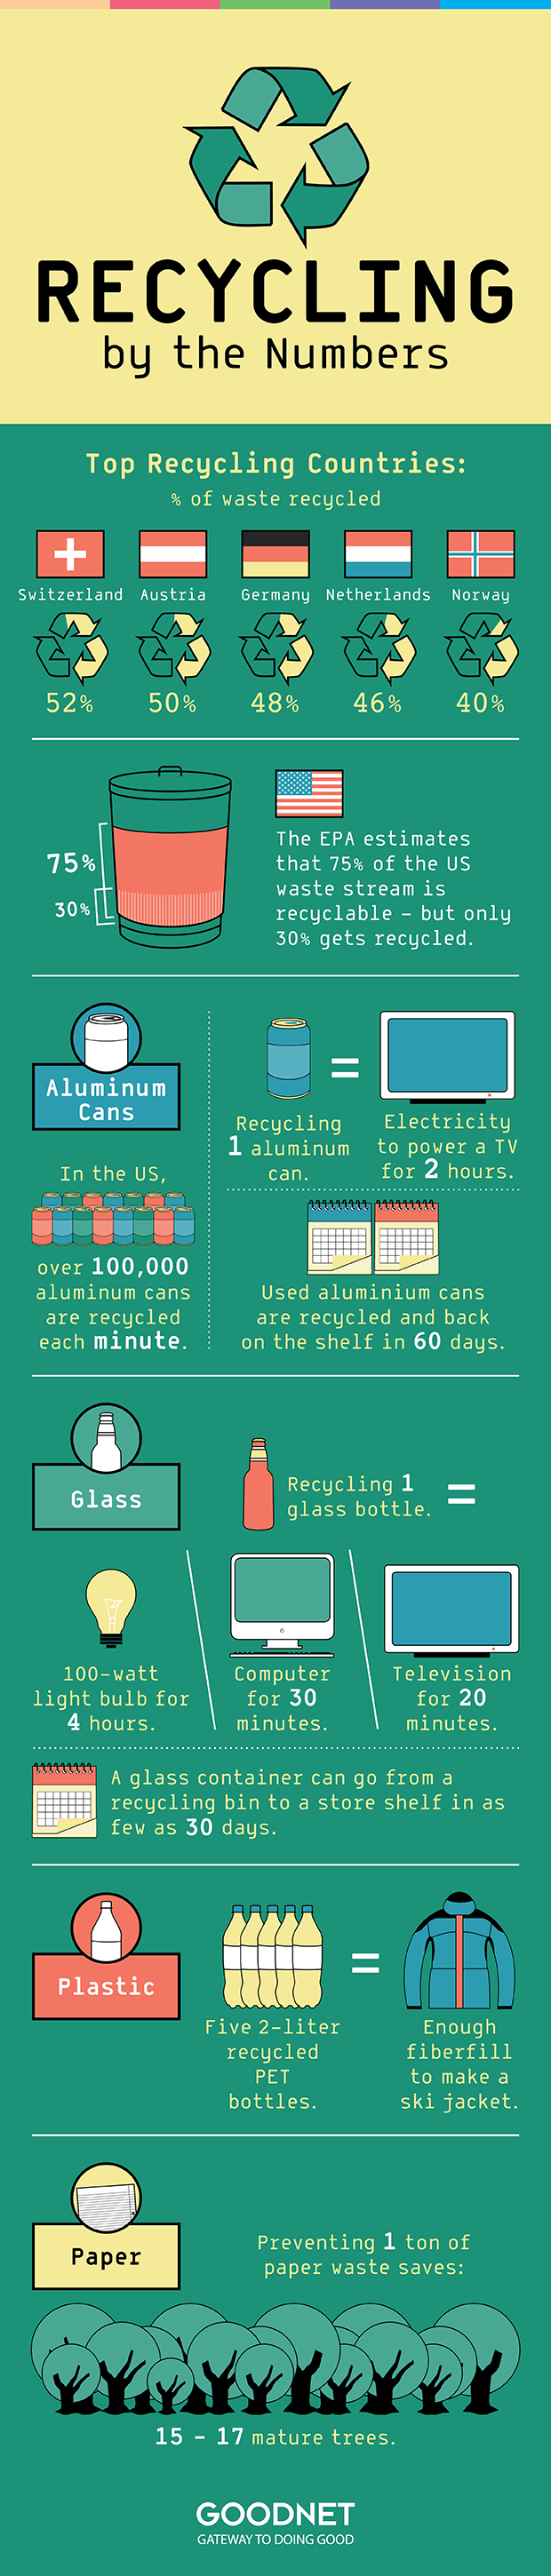 Recycling by the Numbers [INFOGRAPHIC] - Goodnet